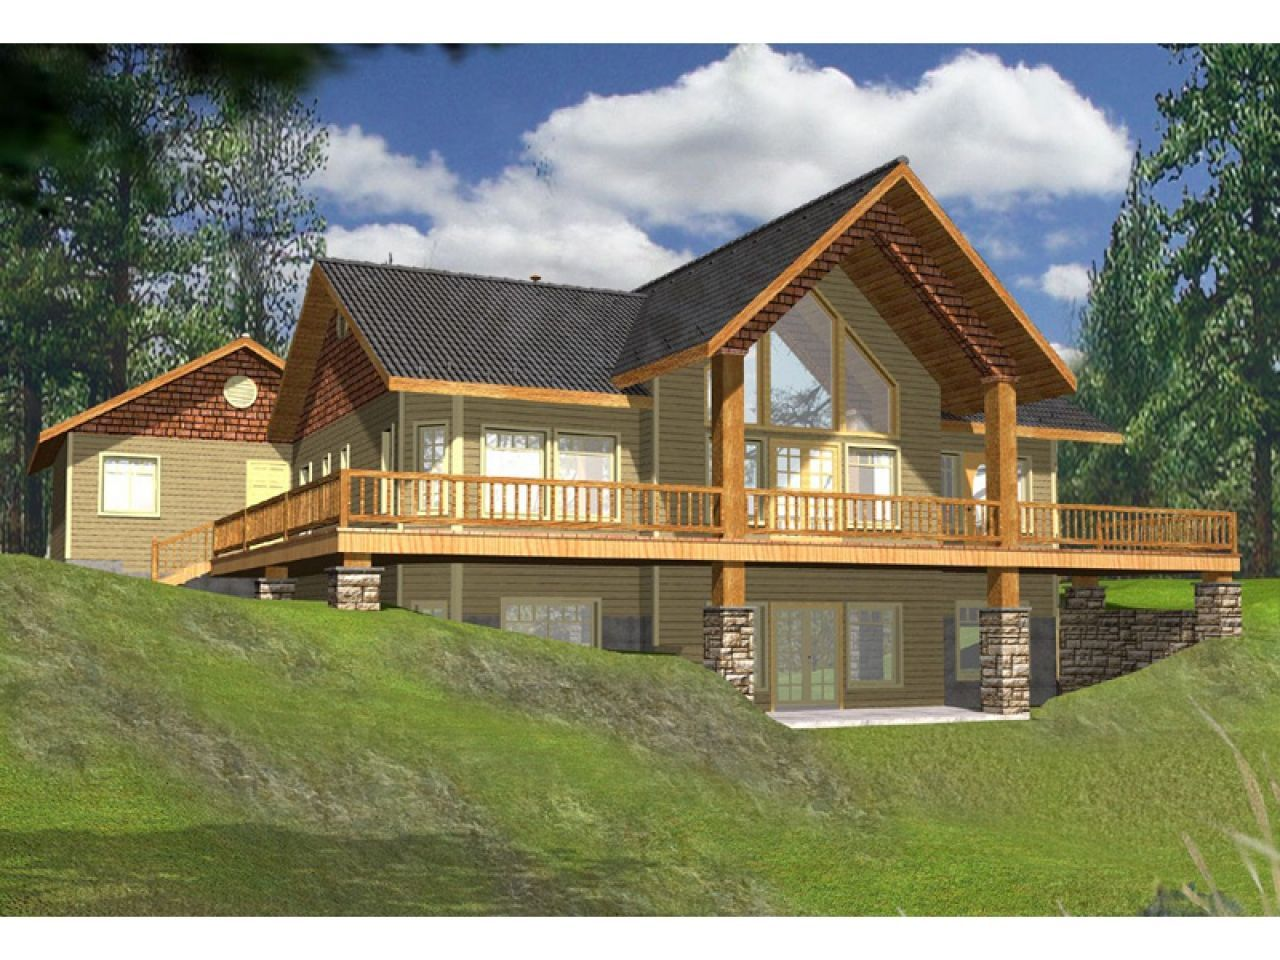 Mountain House Plans With Rear View In 2020 Rustic House Plans Lake House Plans Basement House Plans